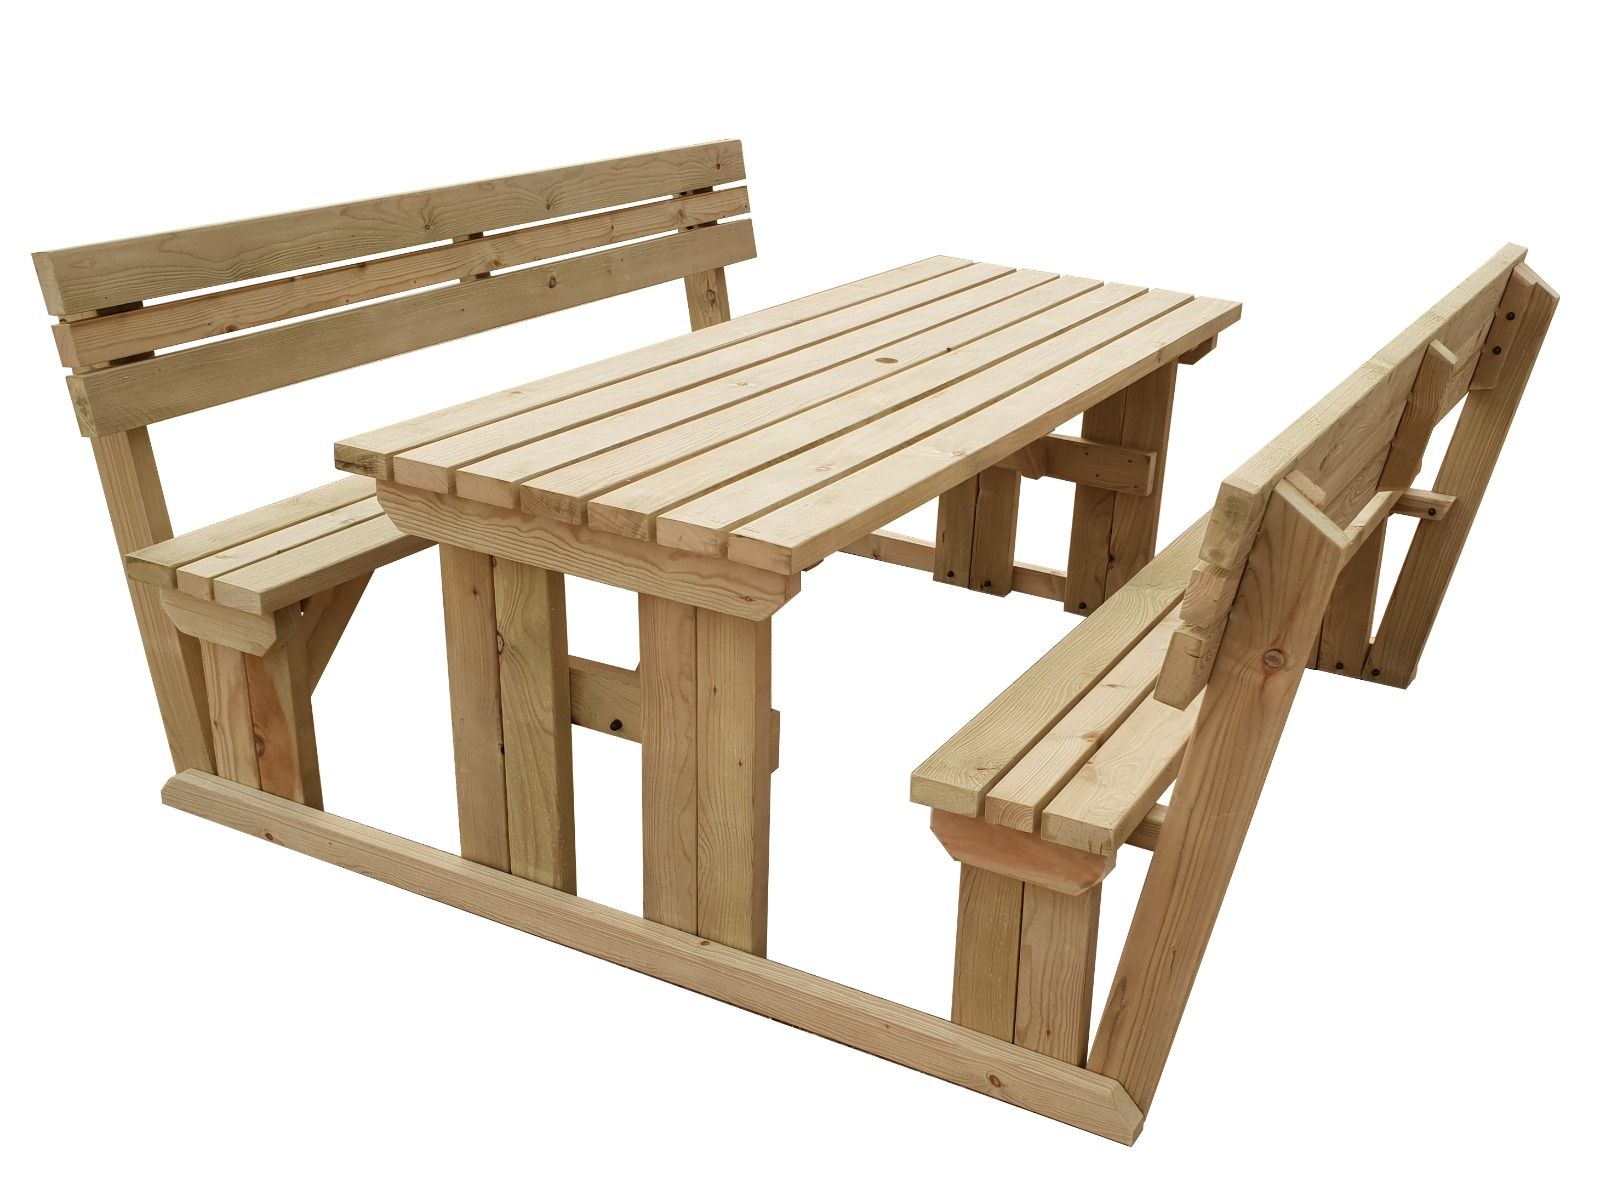 Picnic Table And Bench Set Wooden Garden Furniture With Back Support Alders Ebay